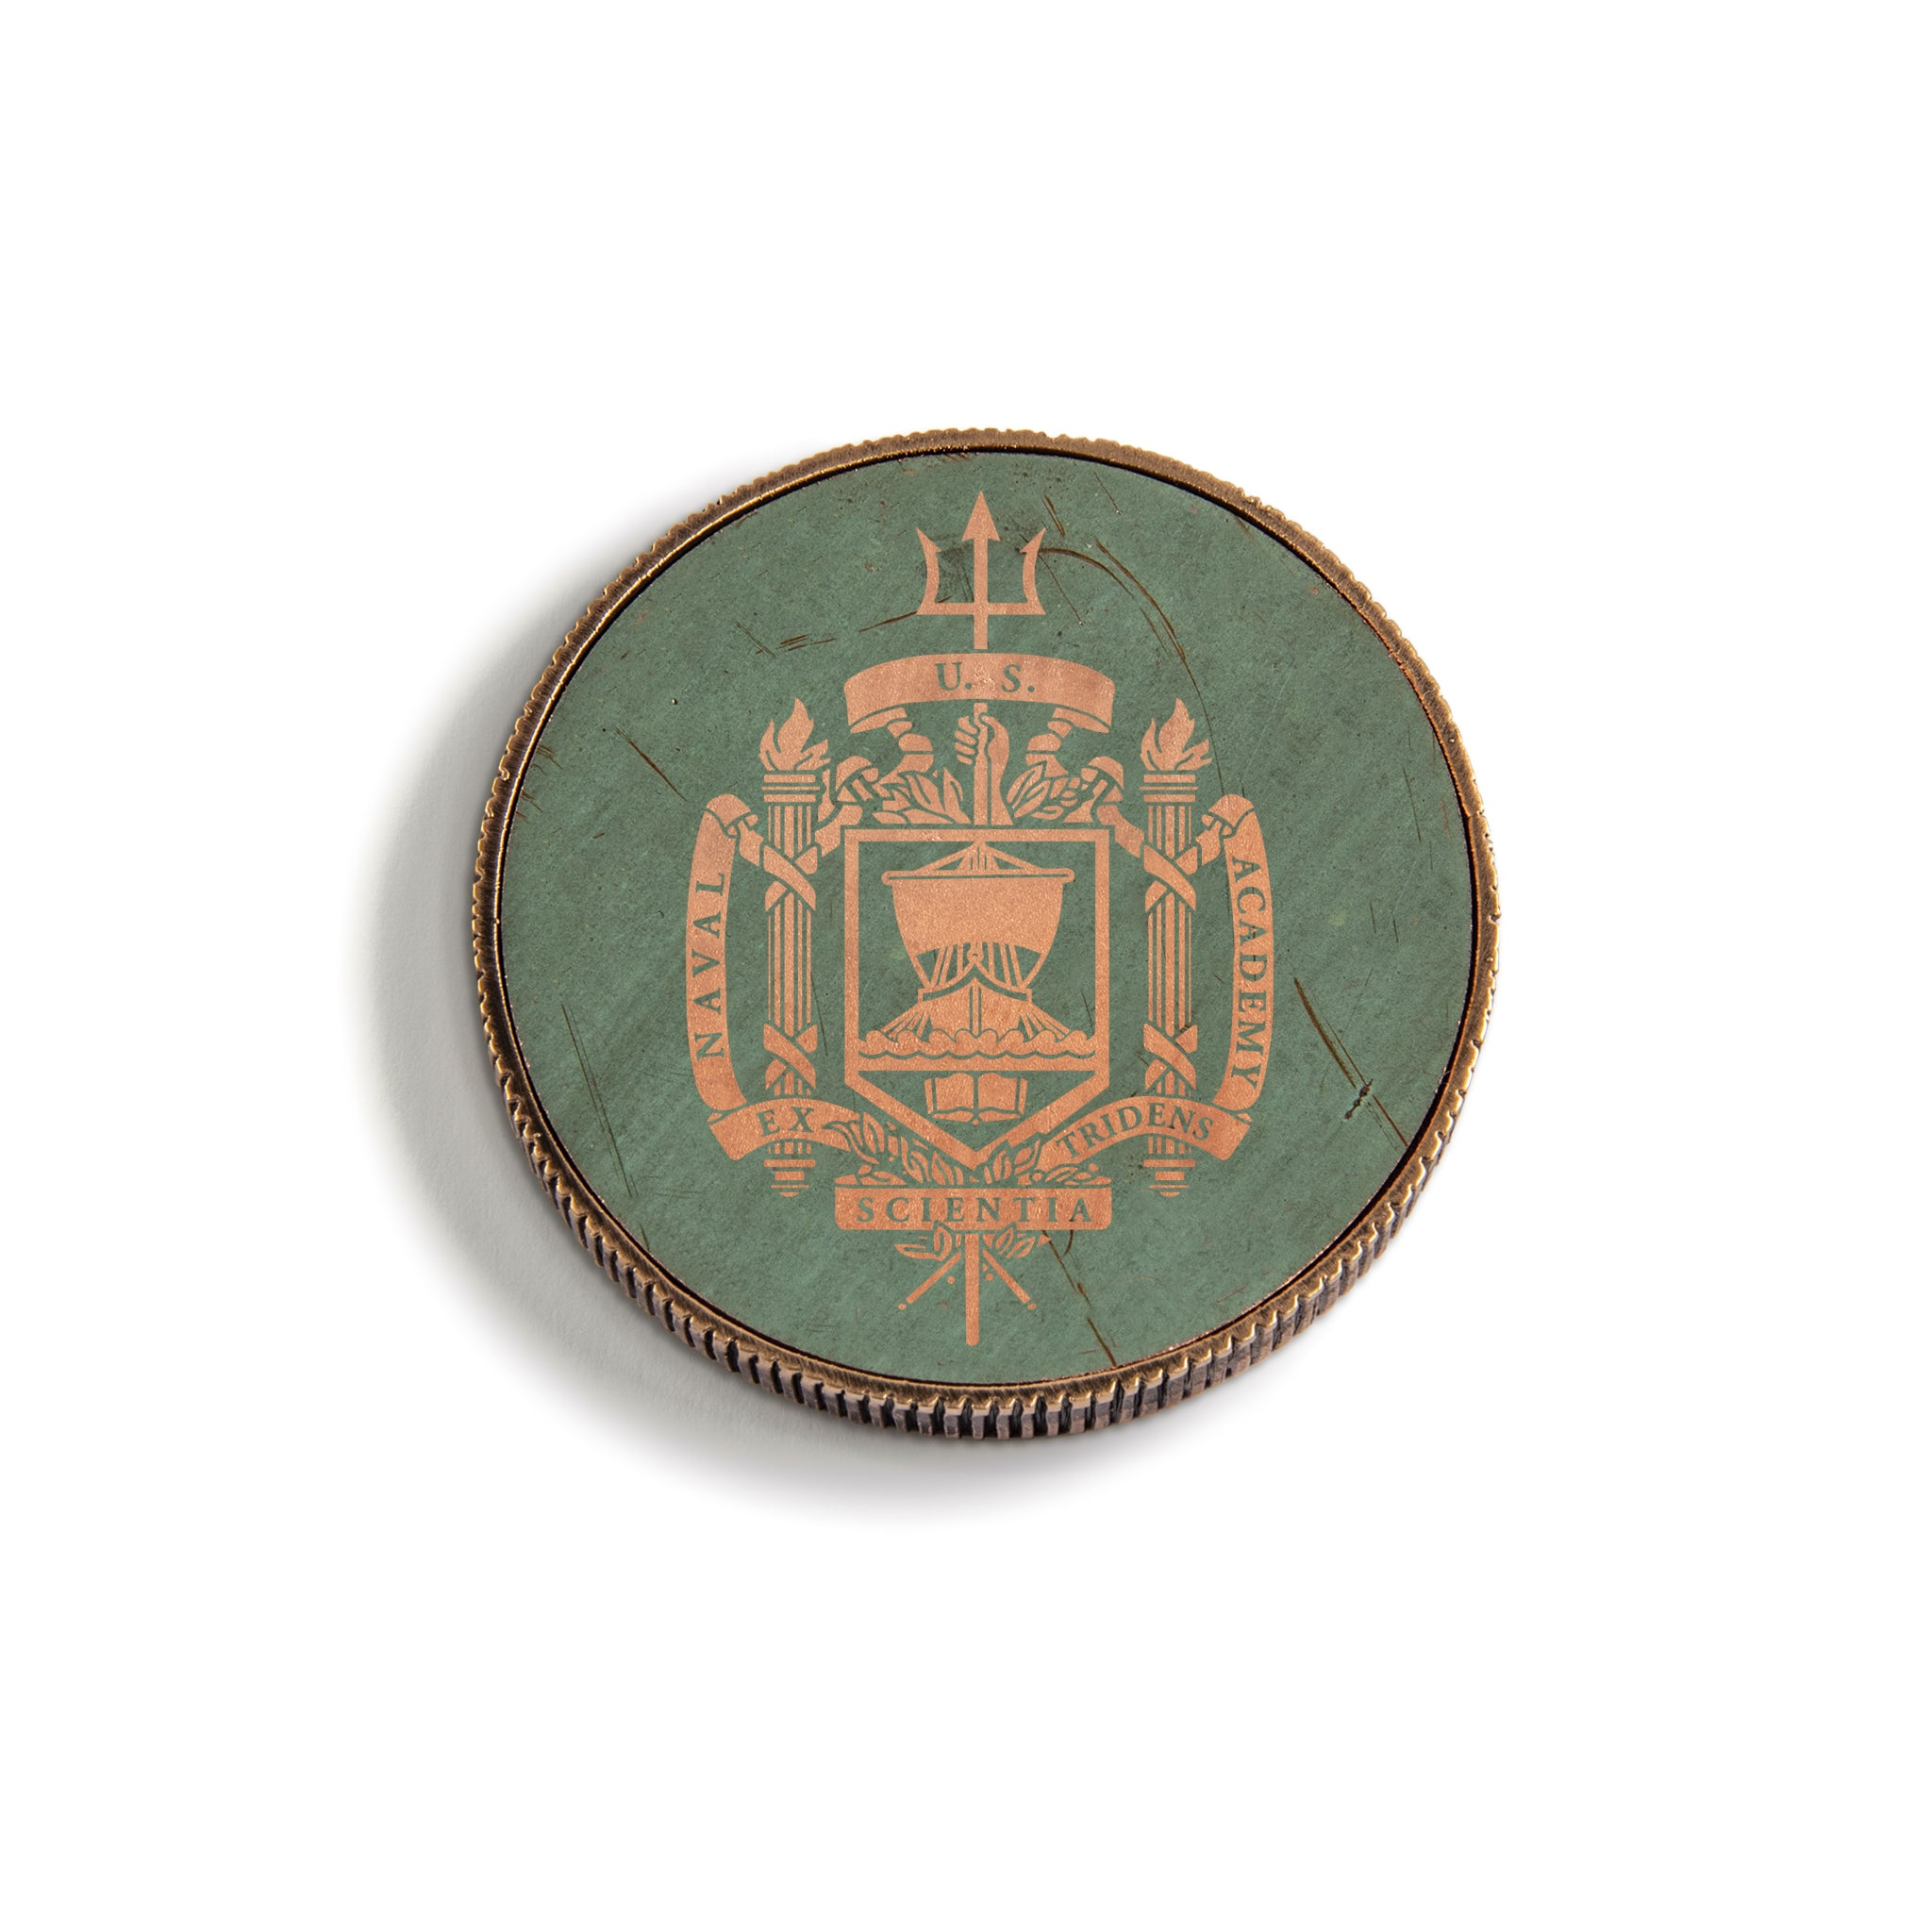 Class of '92 Challenge Coin